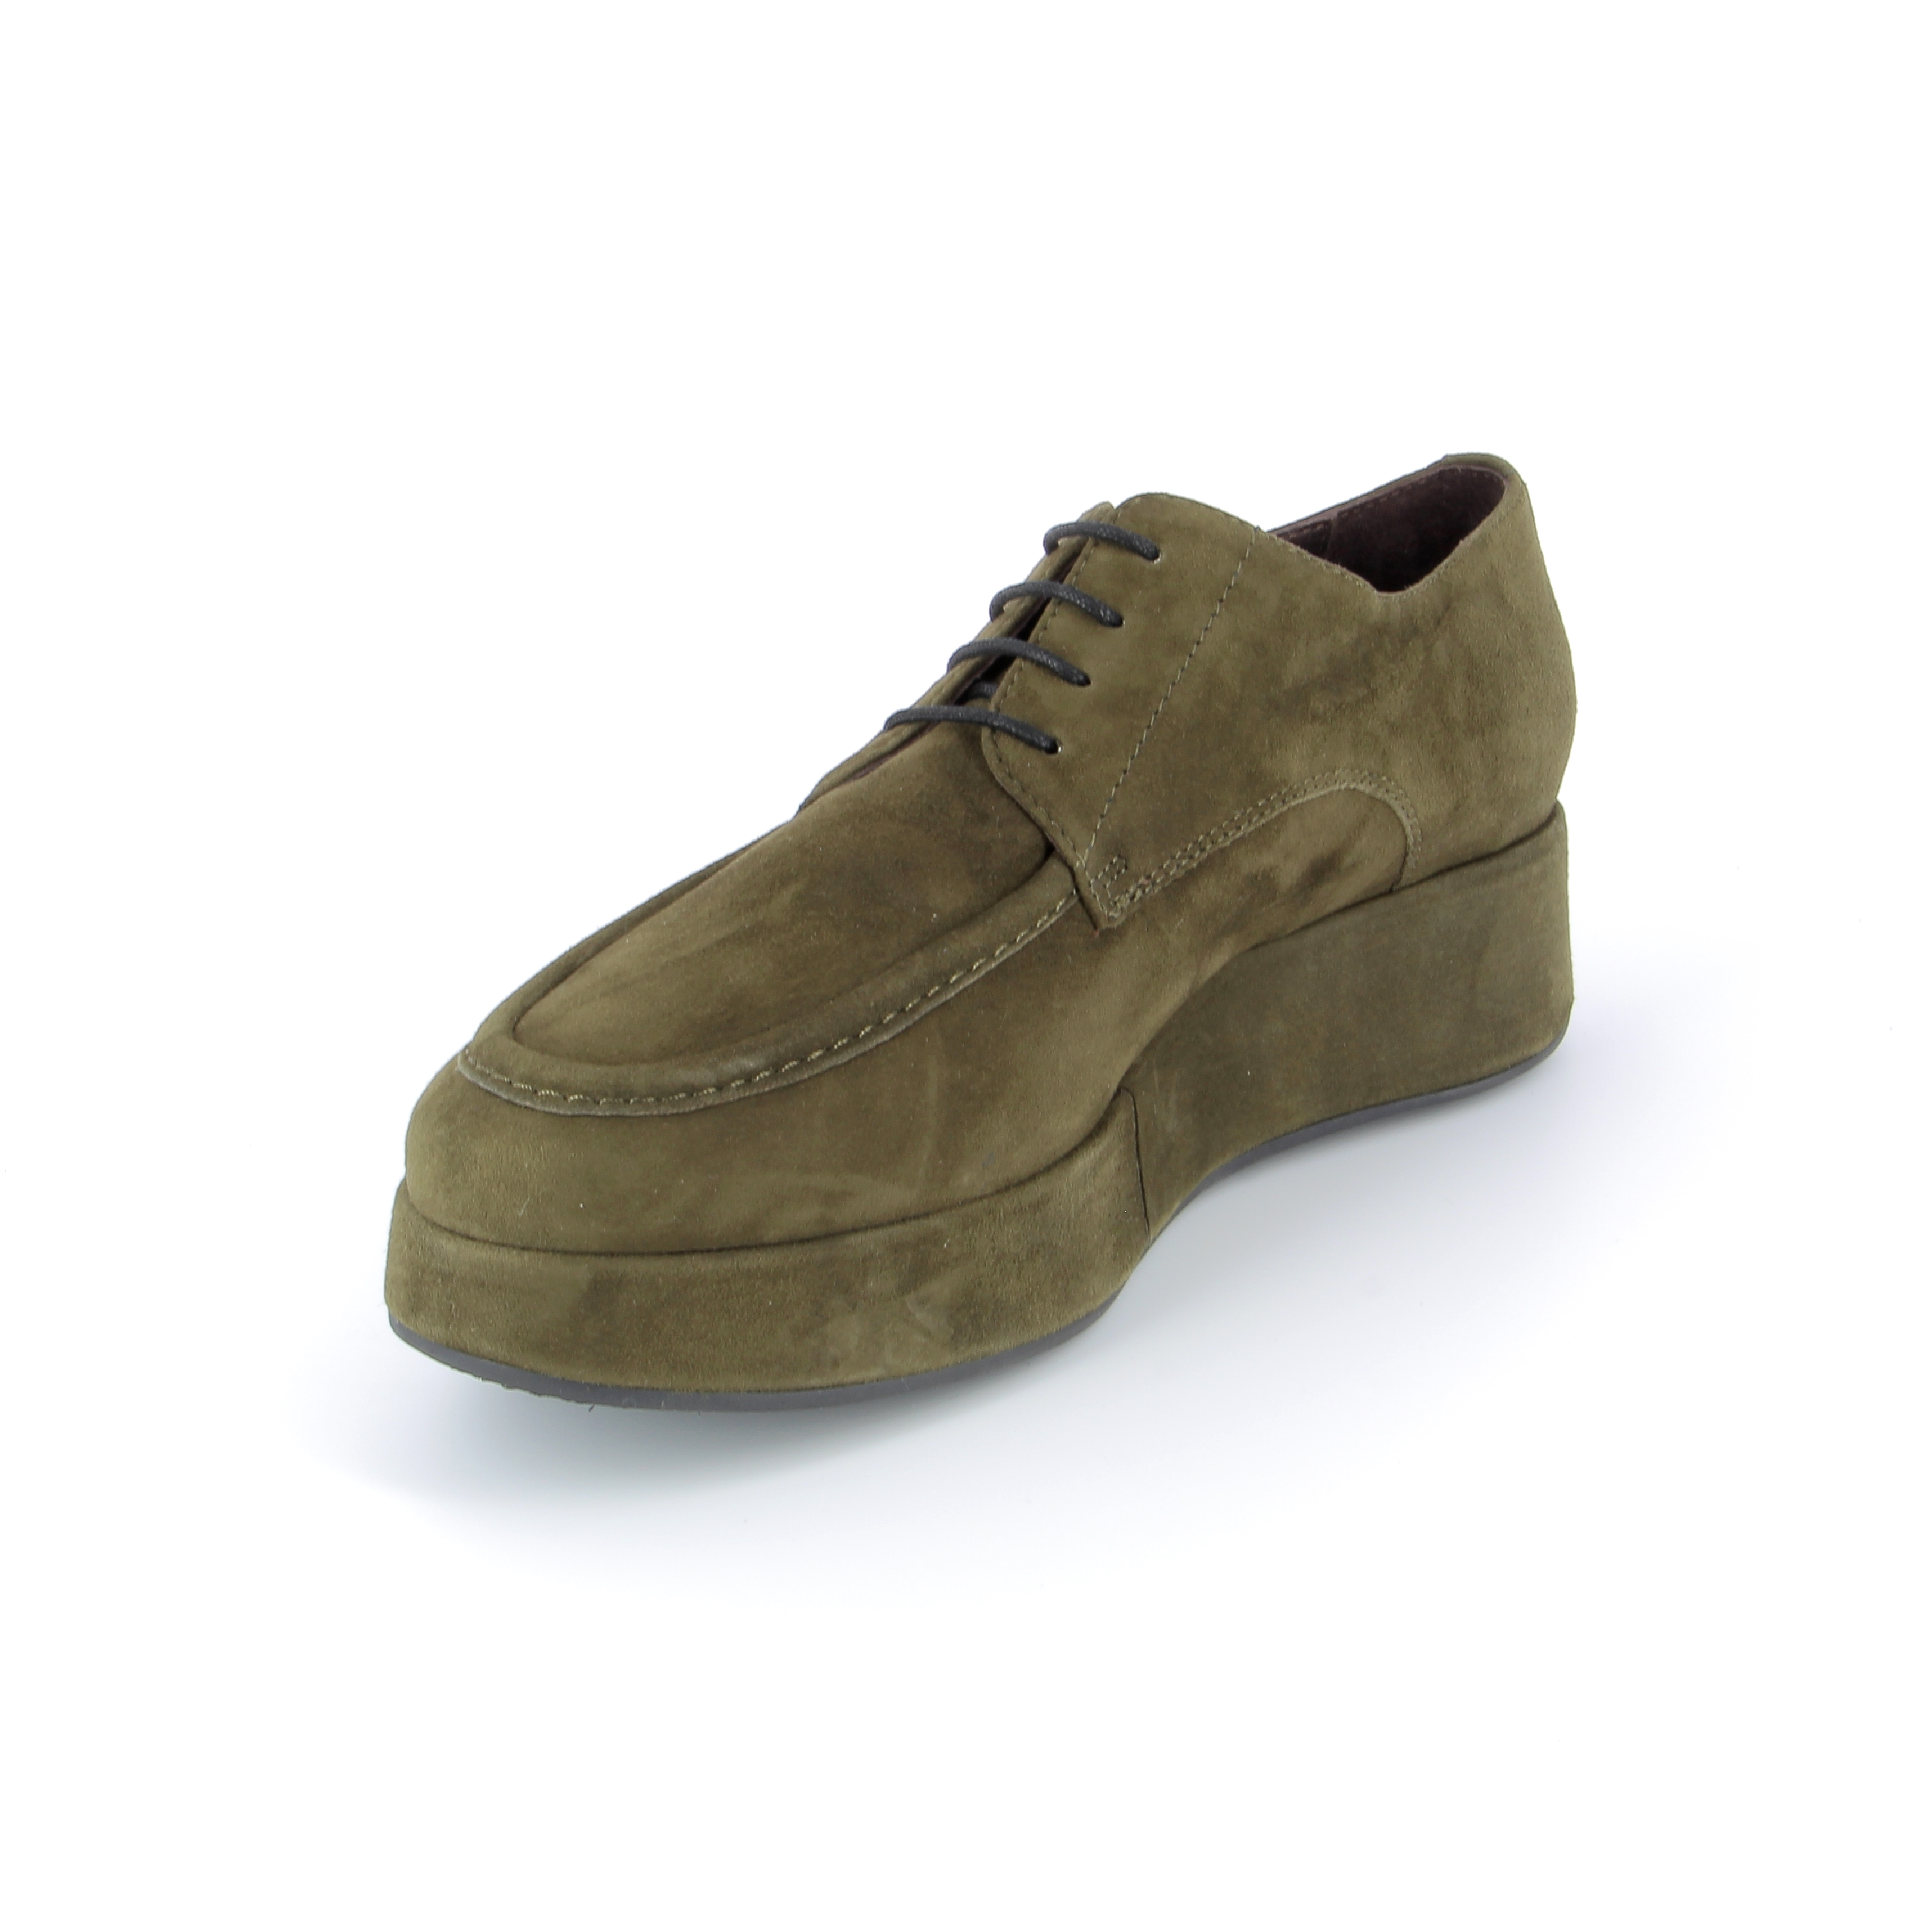 Fashion Moda Veterschoenen kaki